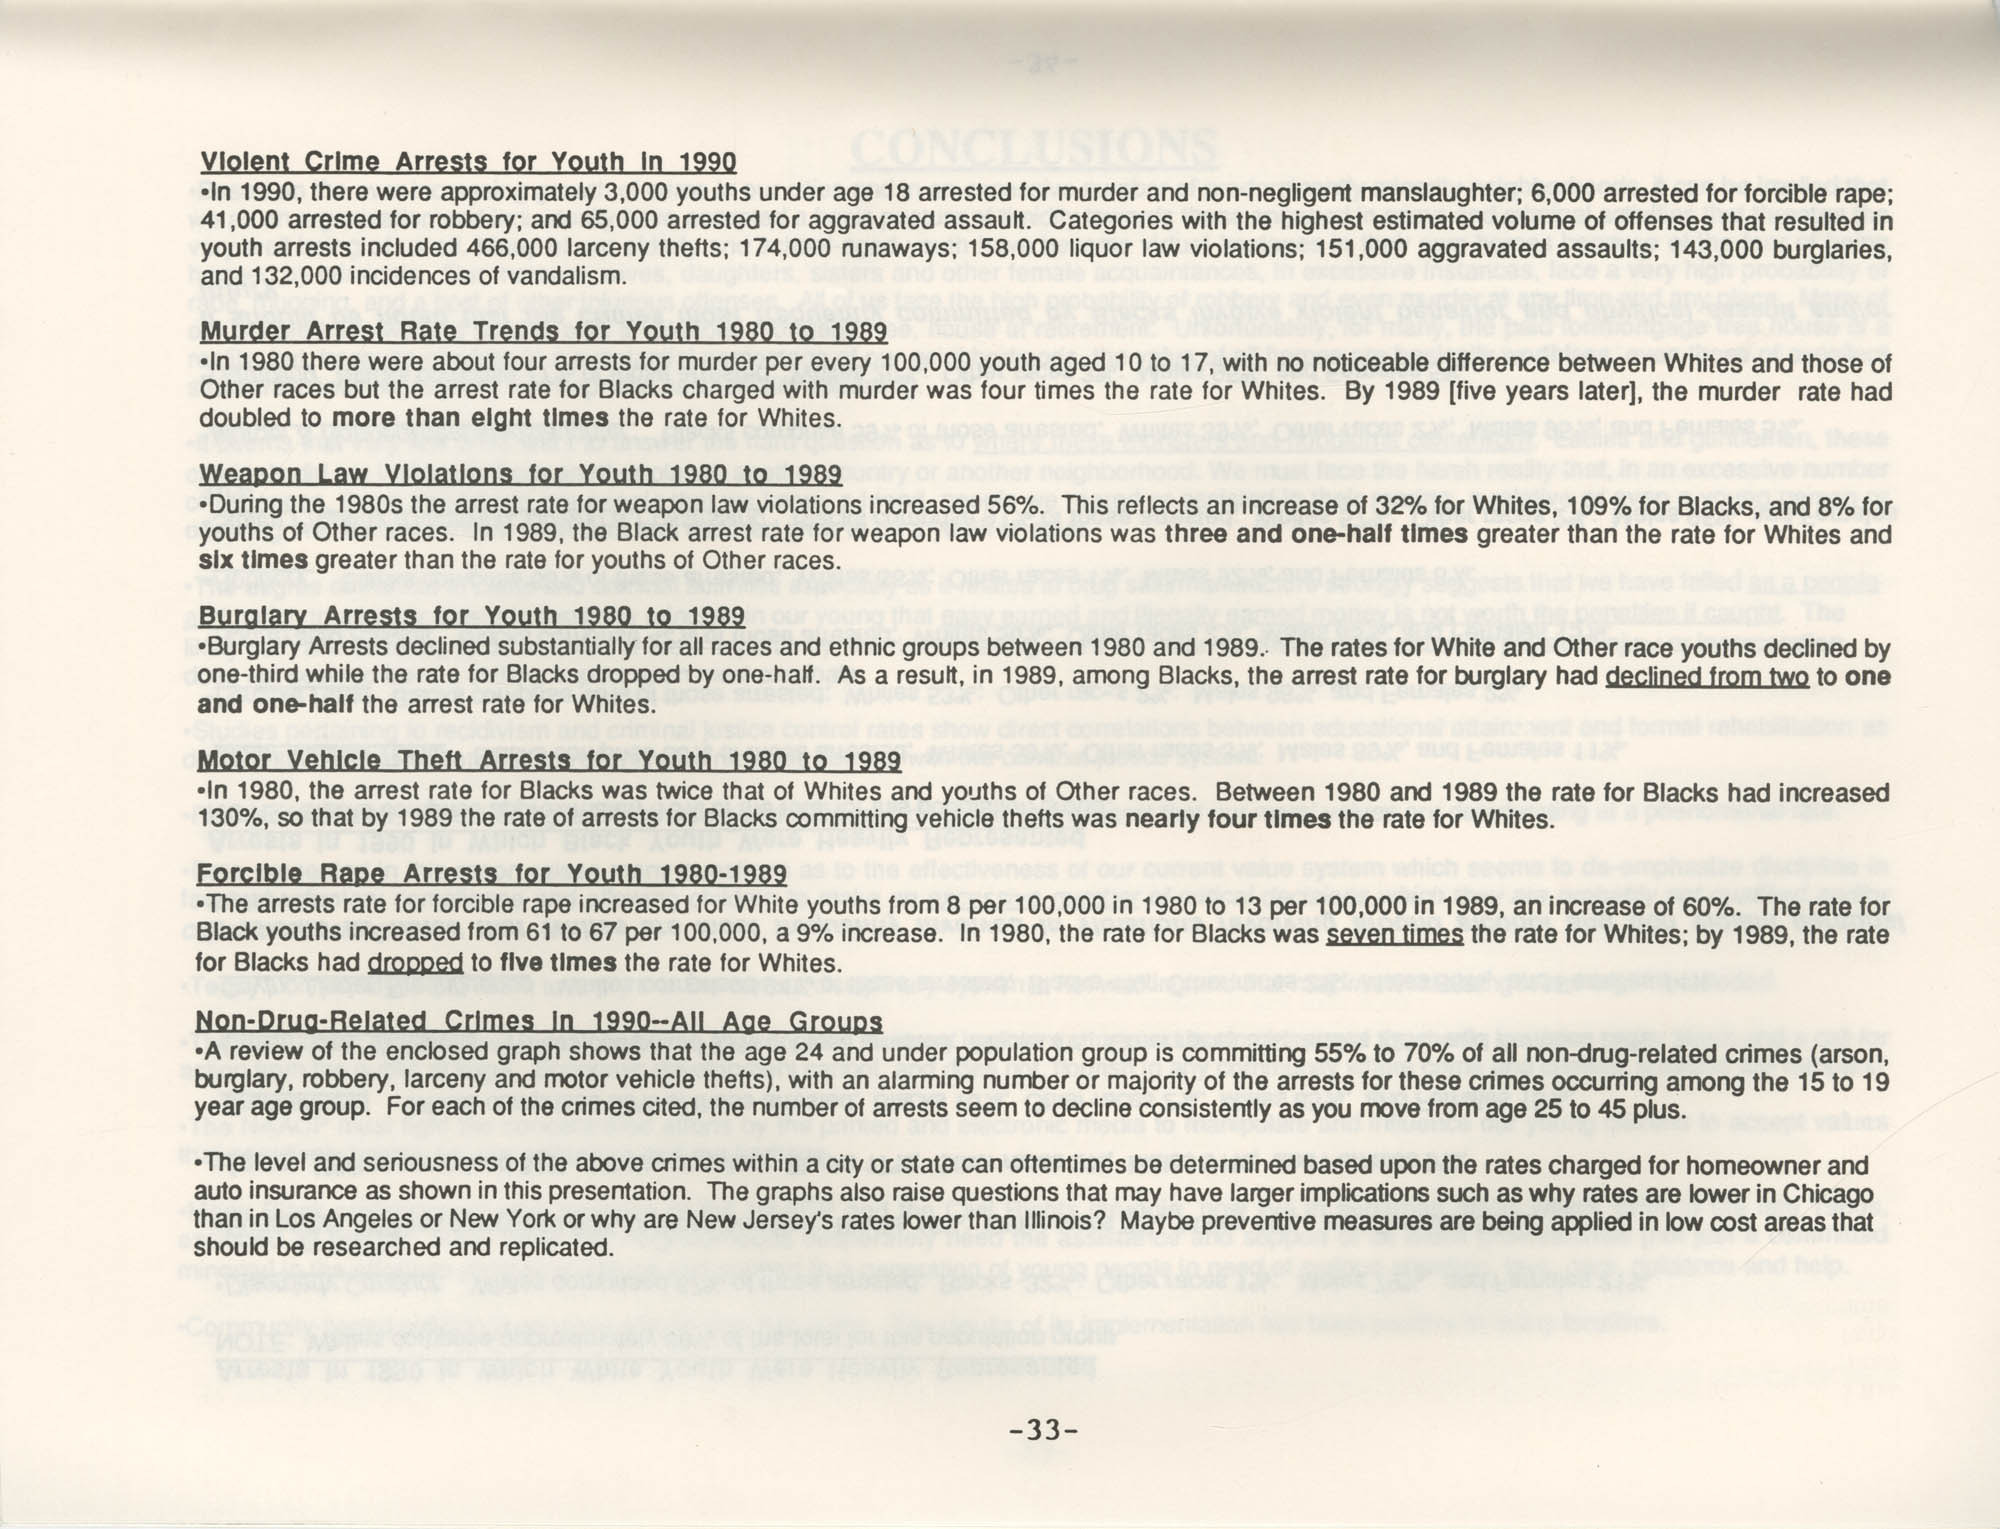 Crime and Criminal Activities in the U.S.A., NAACP National Board of Directors, Page 33